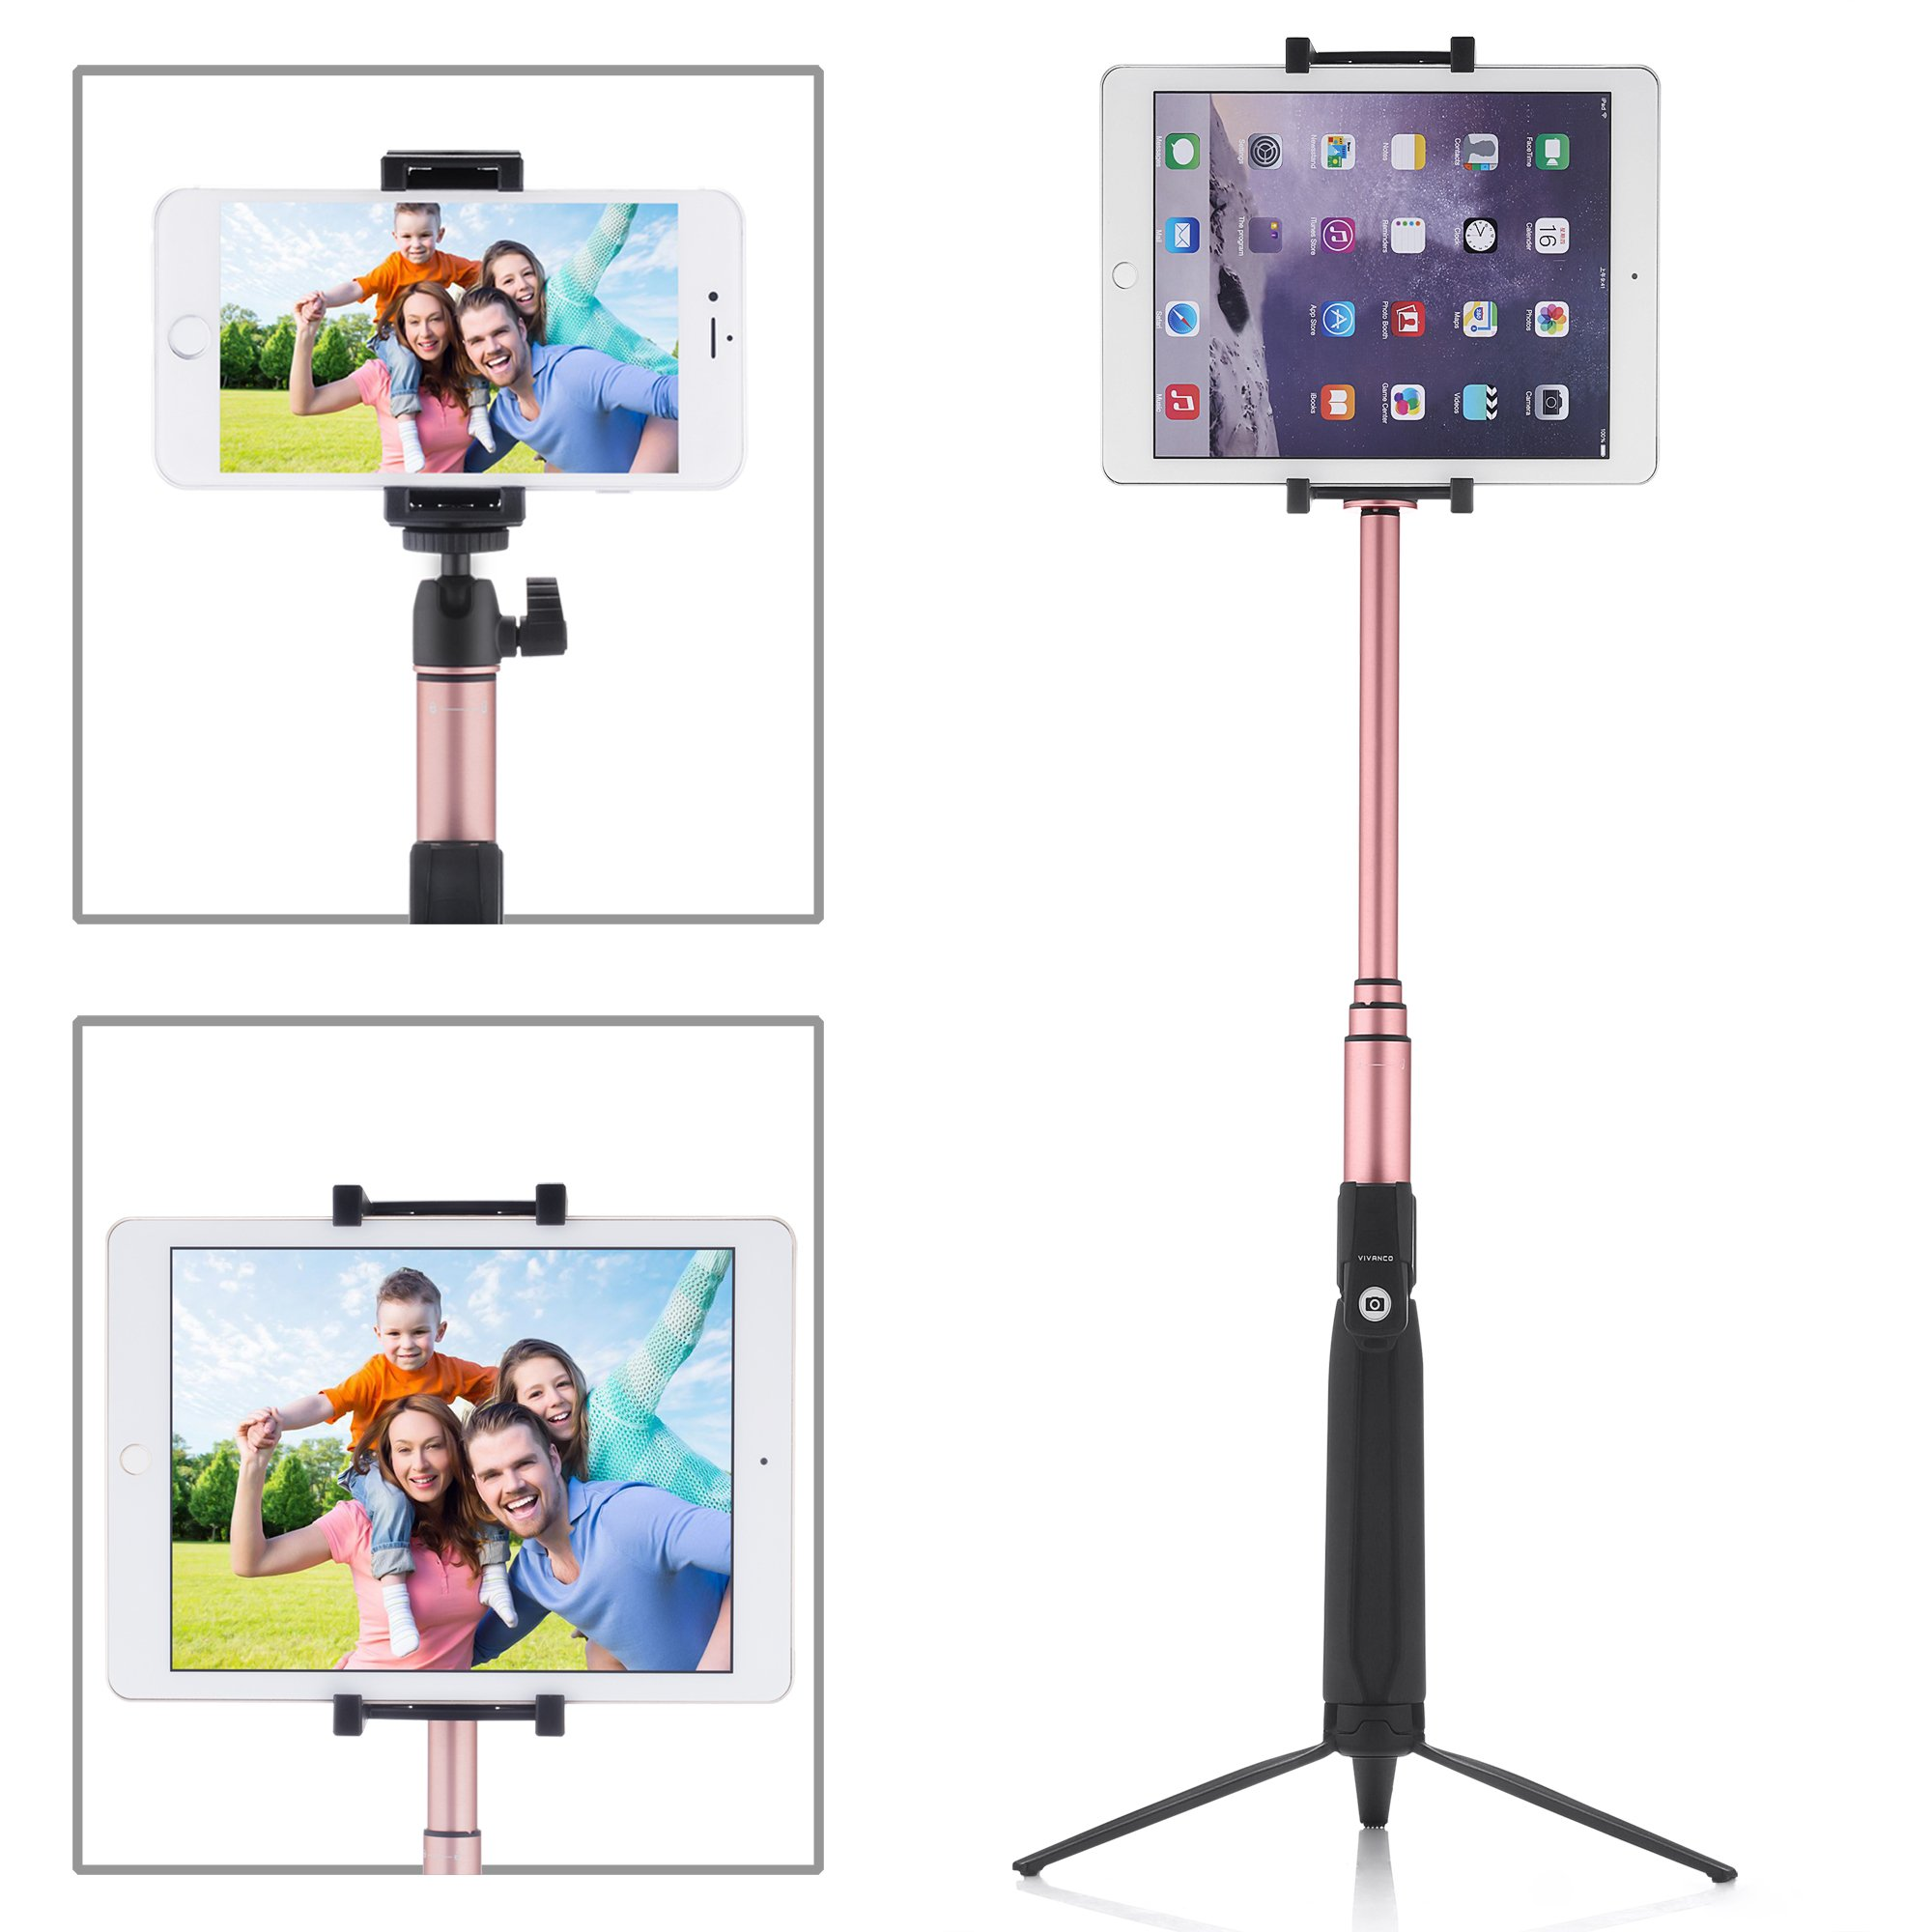 PERLESMITH Selfie Stick with Bluetooth Remote and Tripod Stand - Extends 80cm - Wireless - for Group Photos and Prevents Shakiness - Fits iPhone X 8 7 7Plus 6S 6 Plus, Samsung, iPad, Tablets, Android